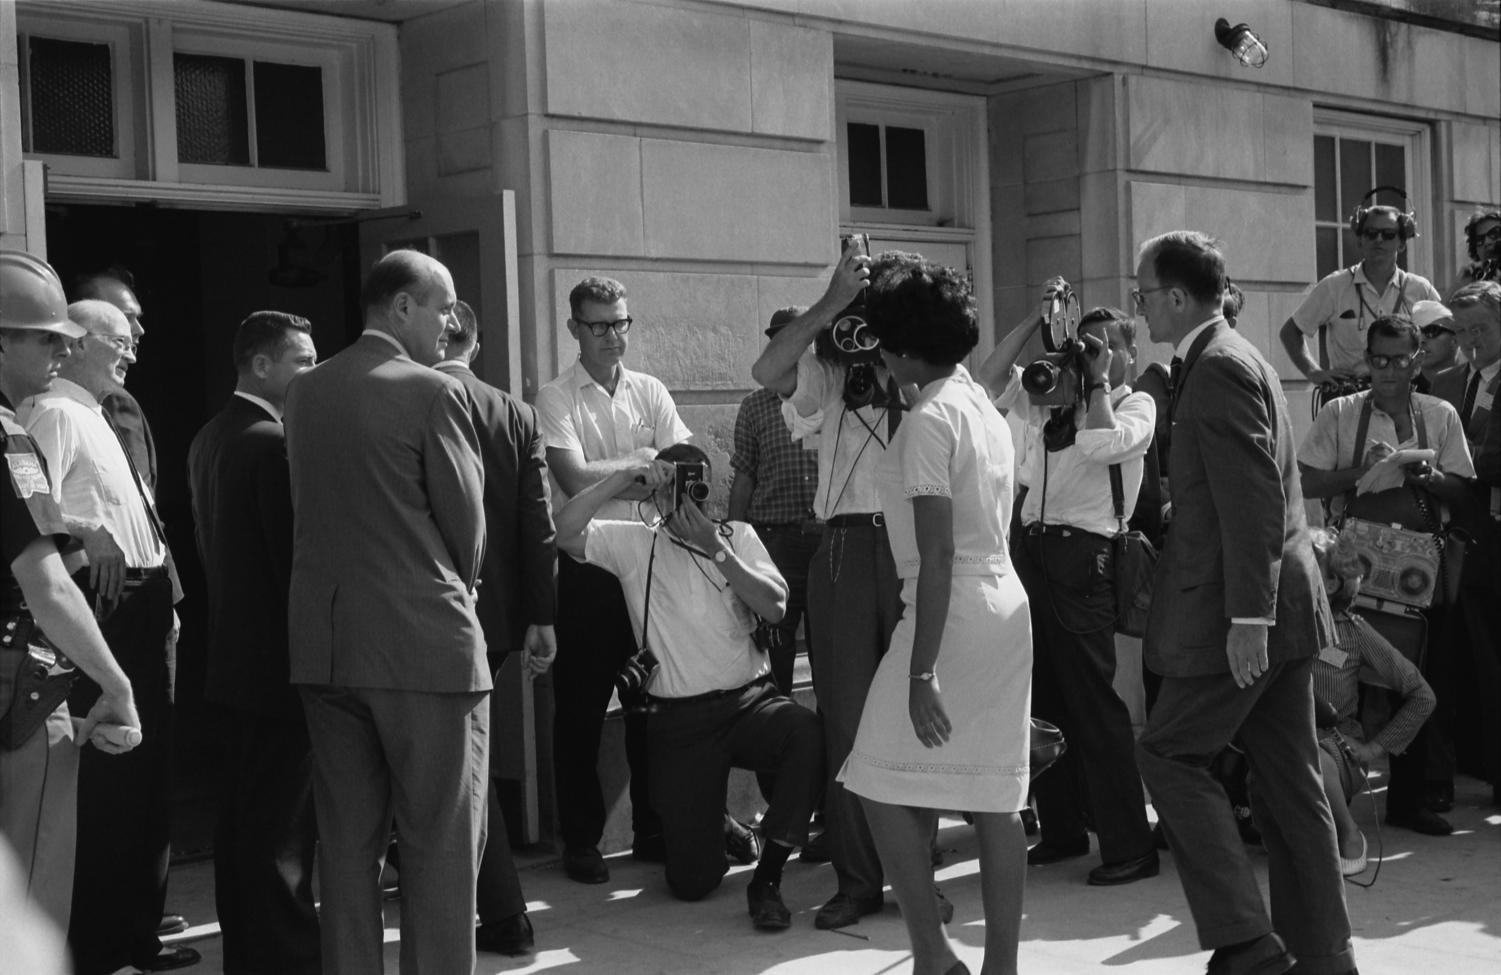 Vivian Malone Jones, one of the first two black students at the University of Alabama, arrives to register for classes. (Courtesy Wikimedia Commons)